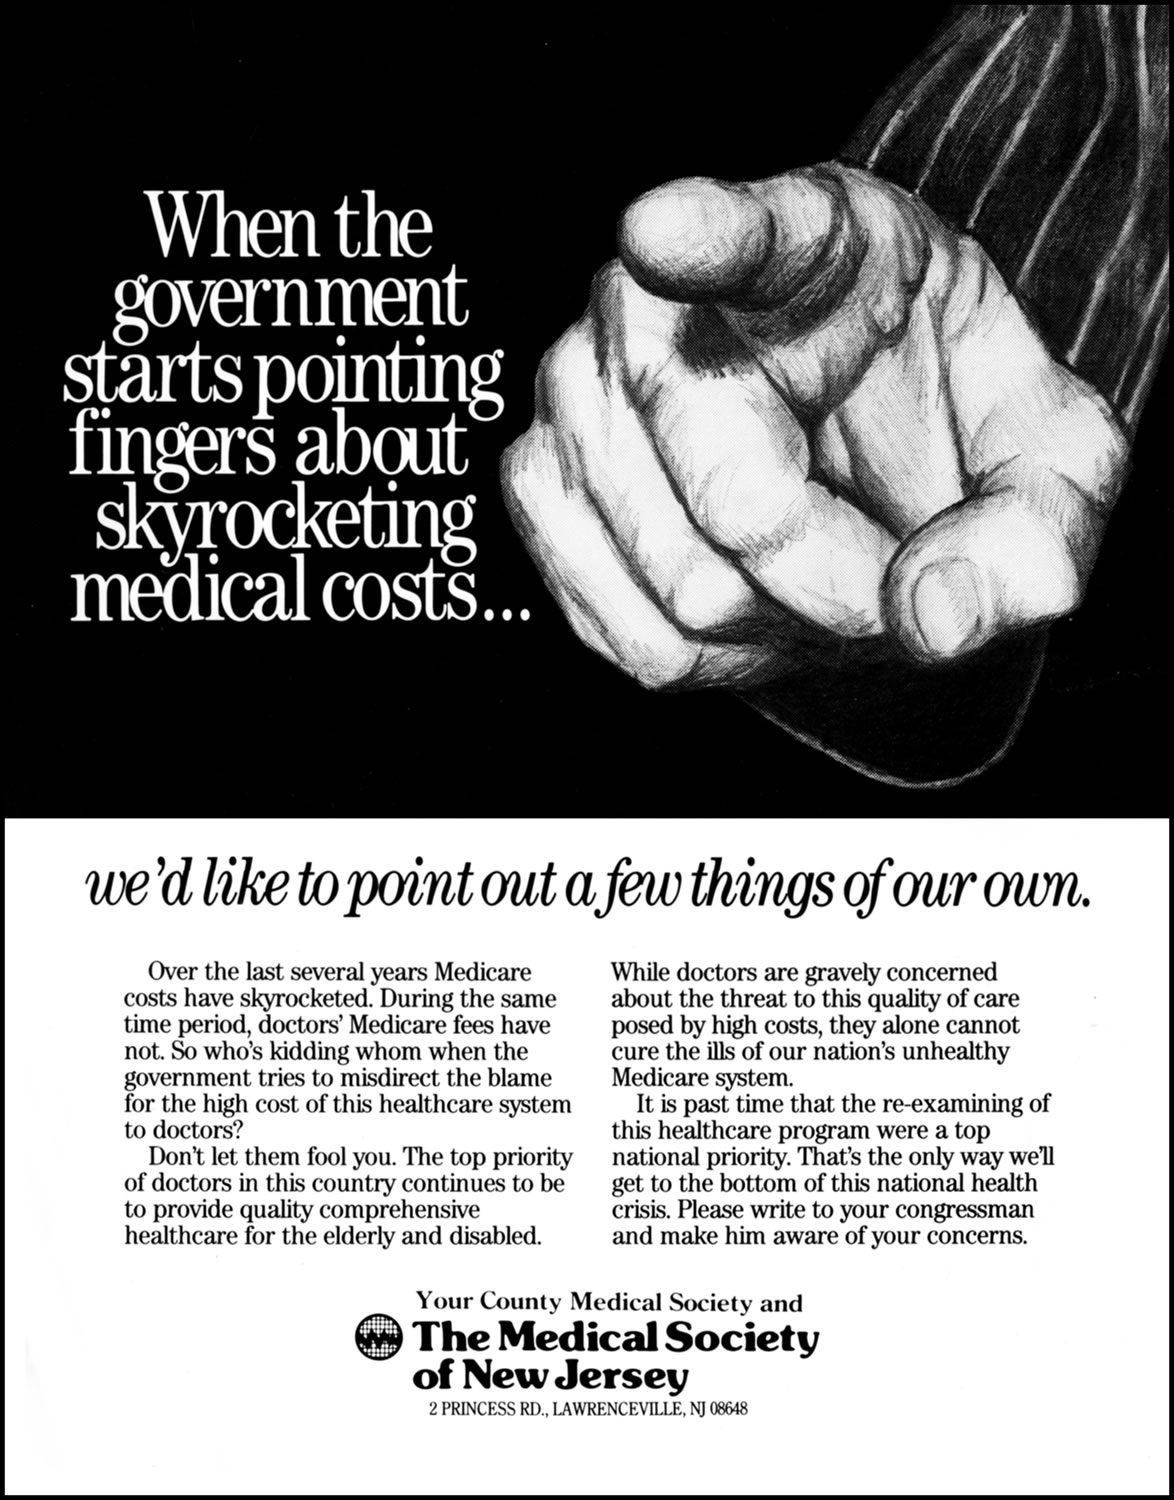 Medical Society of New Jersey - Finger Point (Illustration)